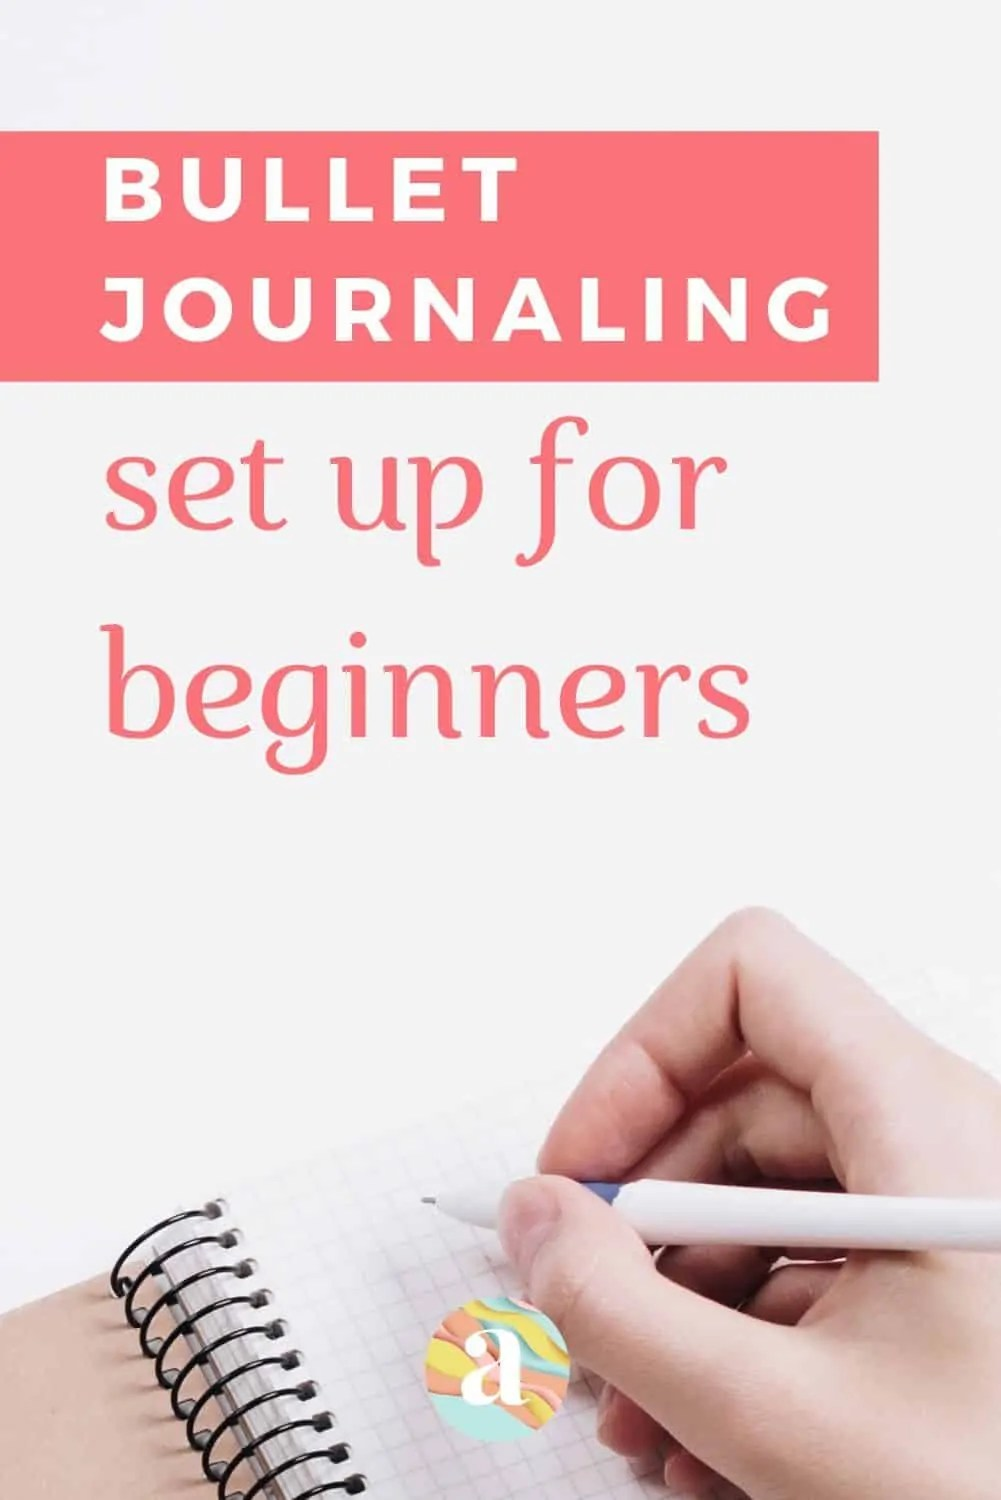 How to set up Bullet Journal - Honest Review of Brainbook 17